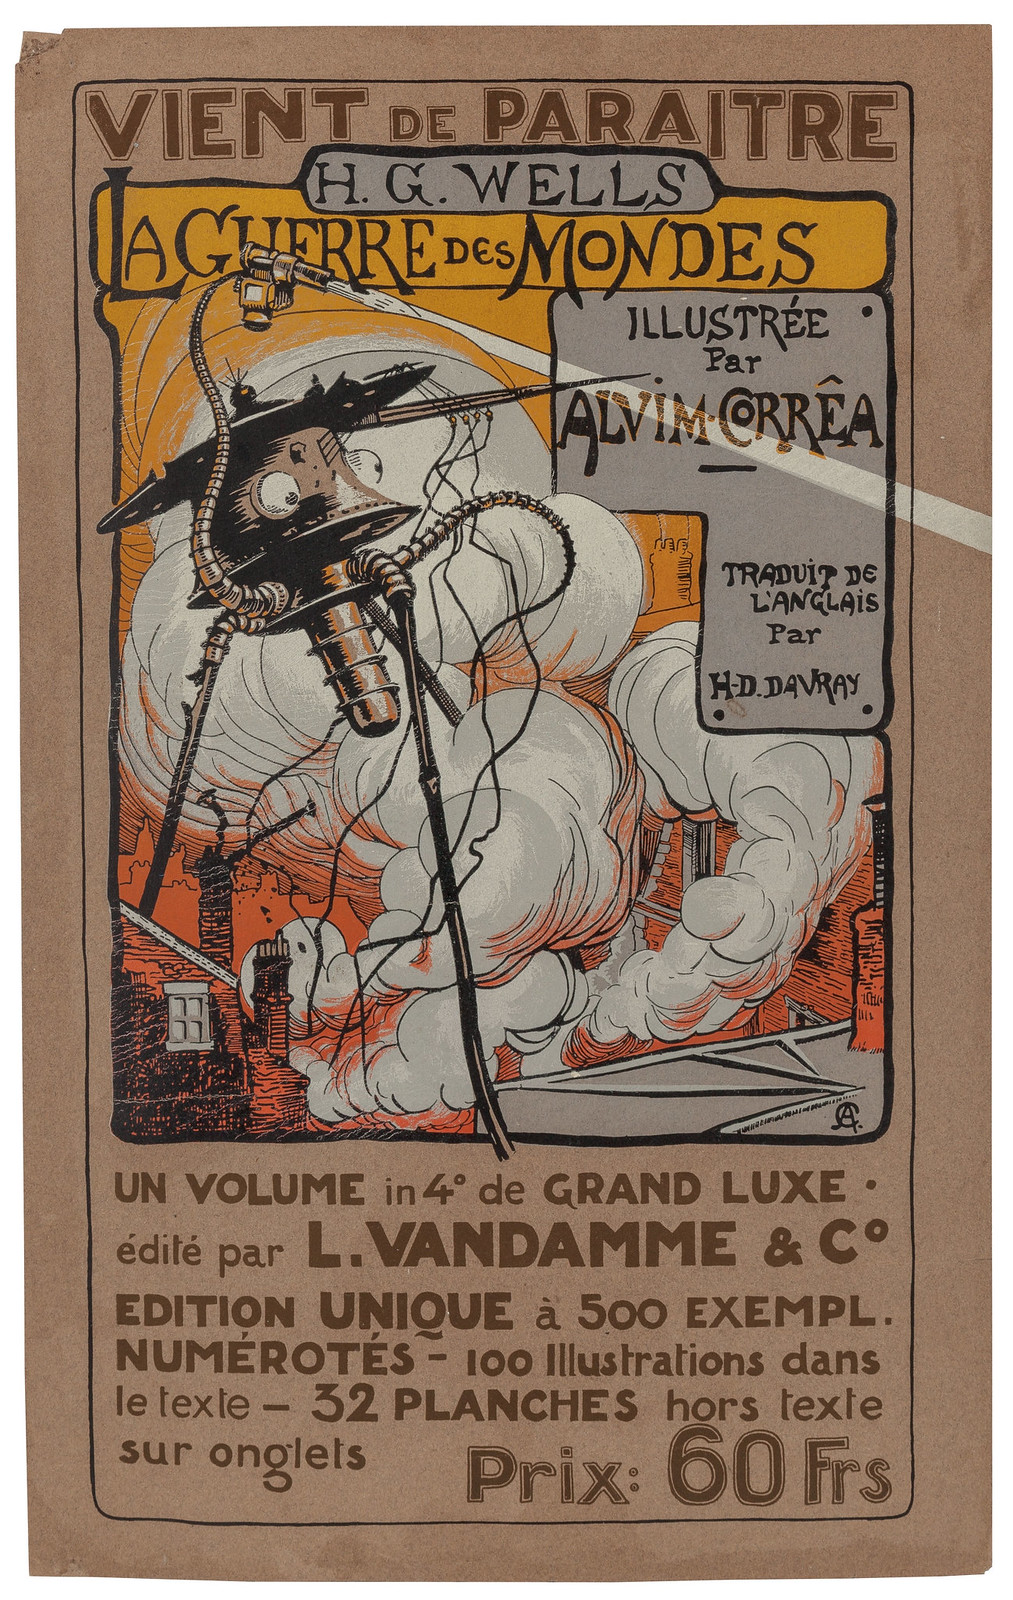 HENRIQUE ALVIM CORRÊA -he War of the Worlds, L'Vandamme edition announcement poster, 1906